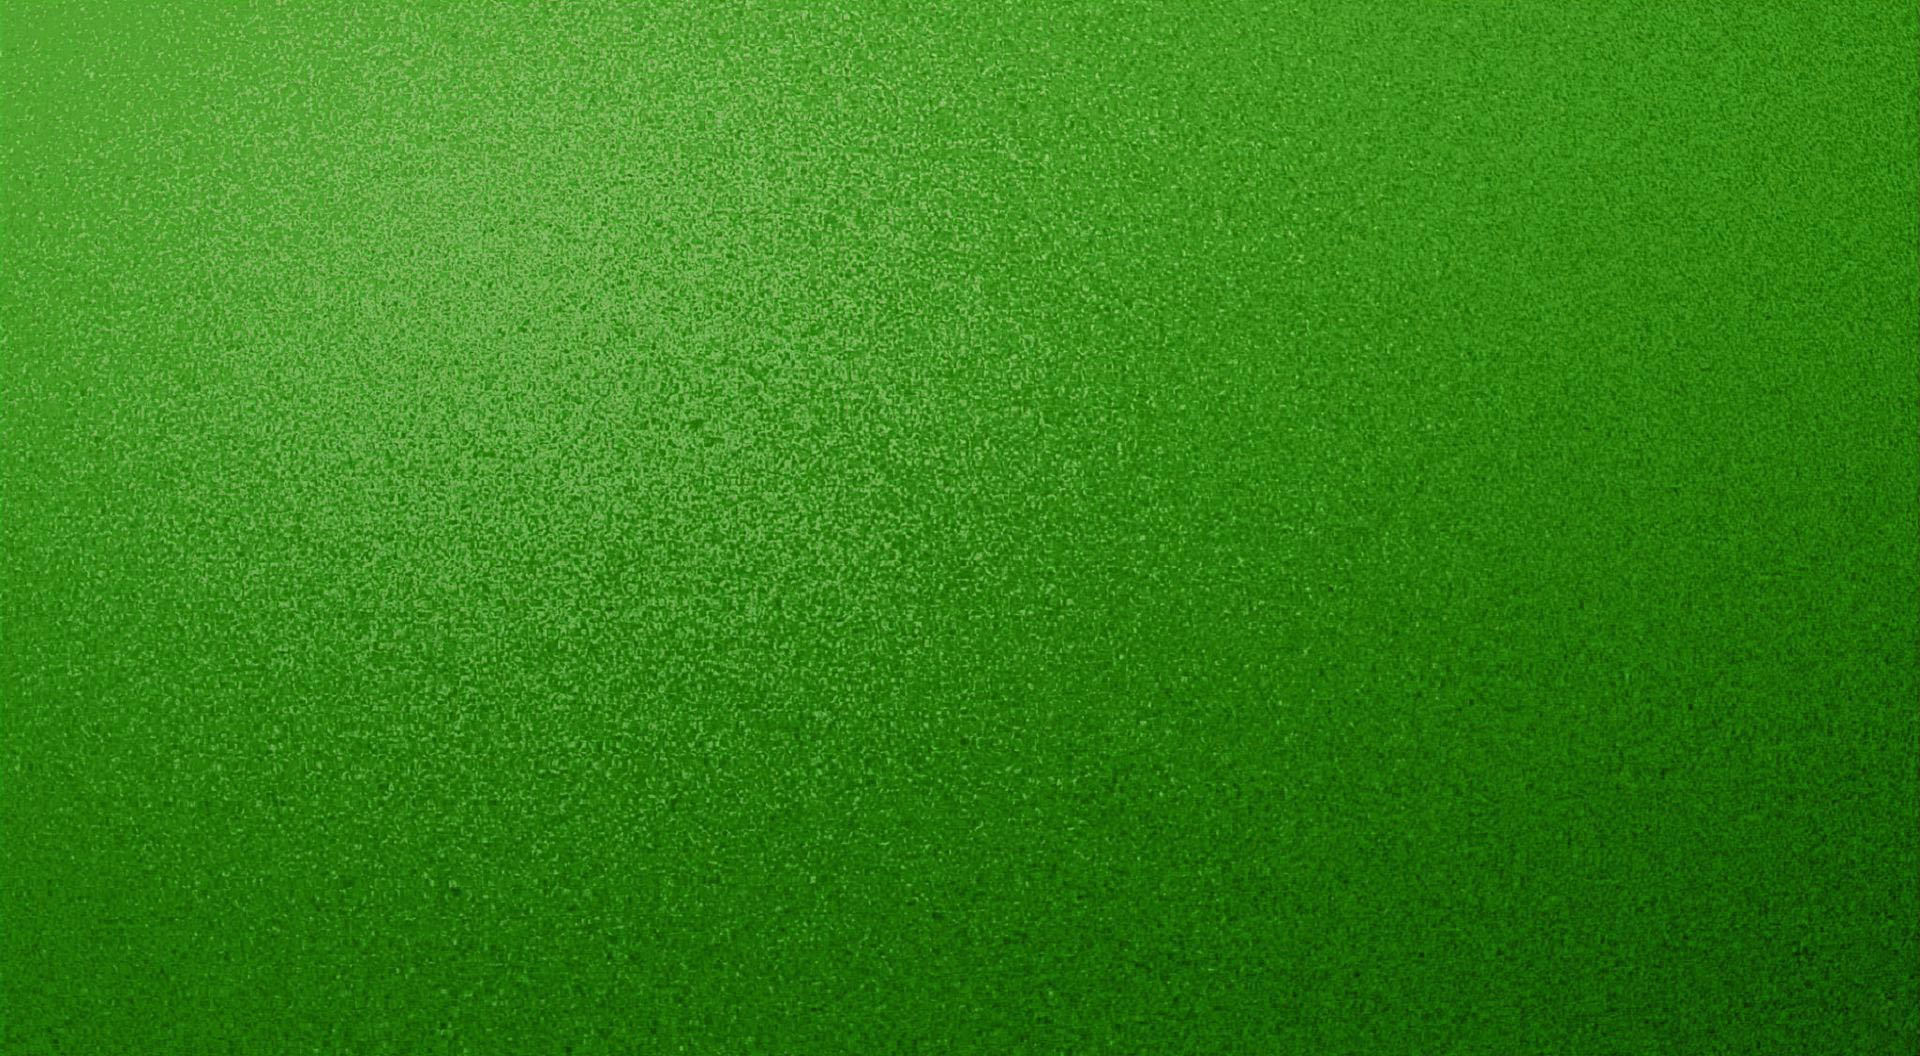 Green textured speckled desktop background wallpaper for use with Mac ...